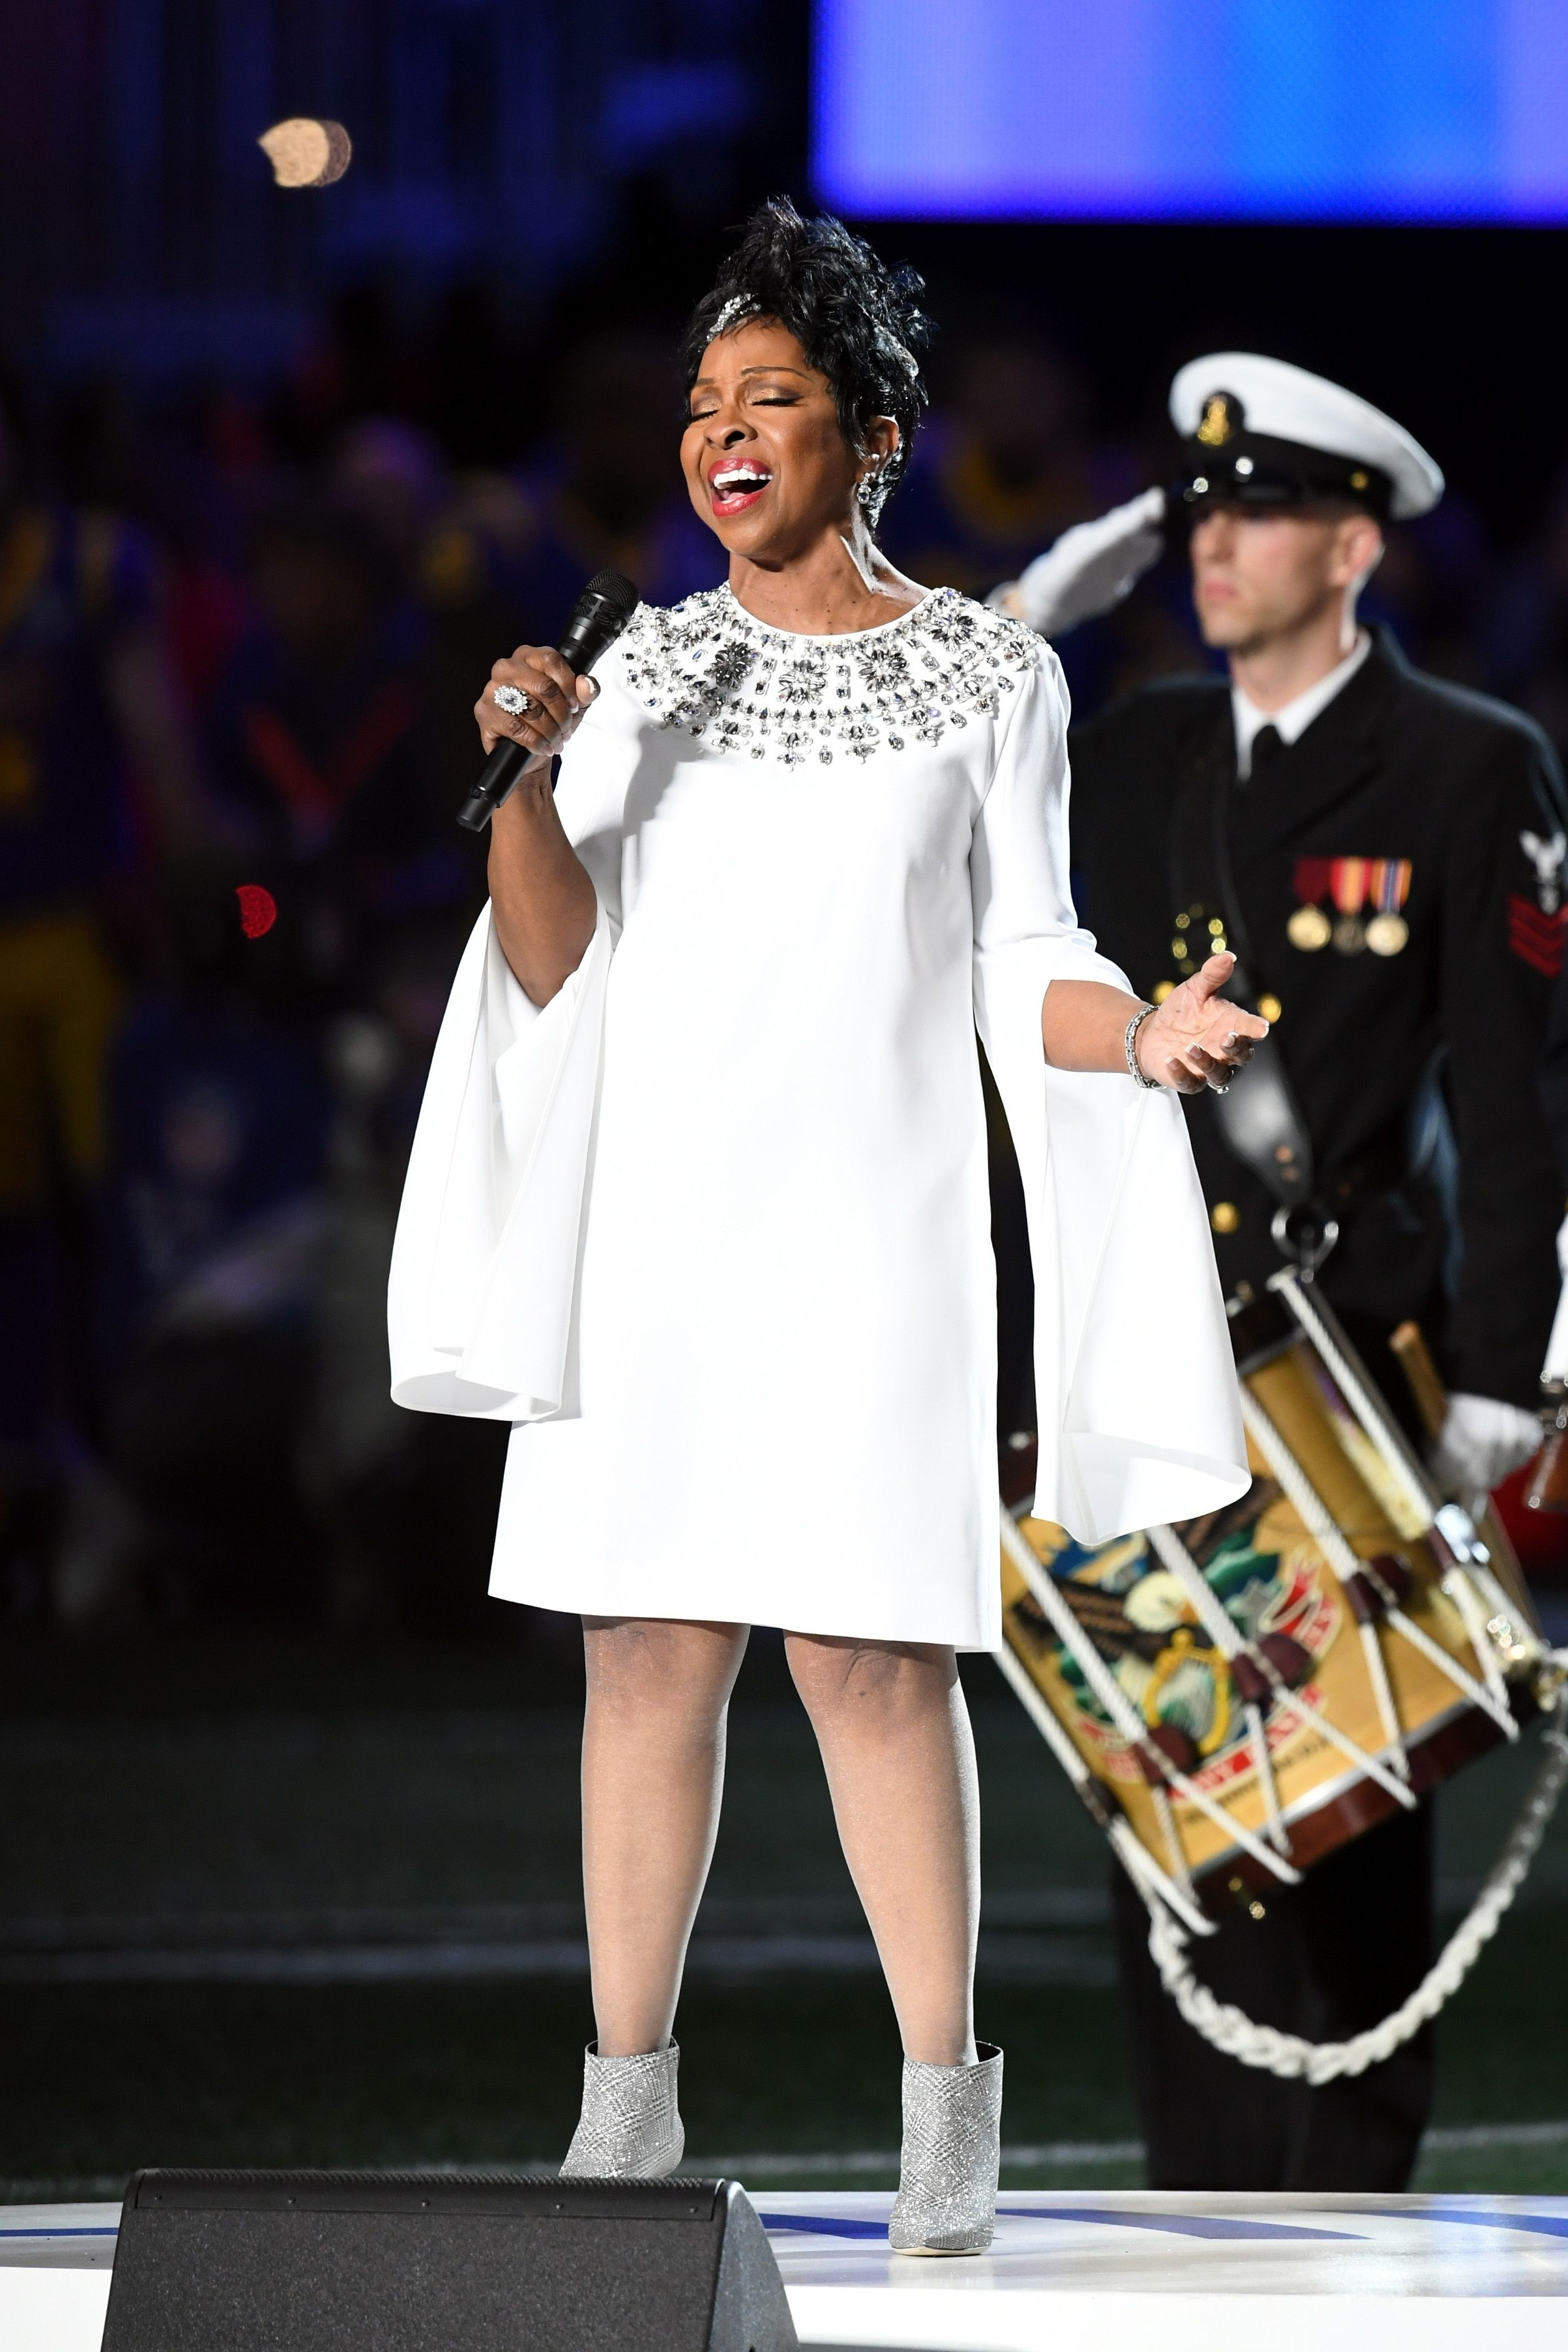 Watch Gladys Knight Sing The National Anthem At The Super in Gladys Knight Super Bowl